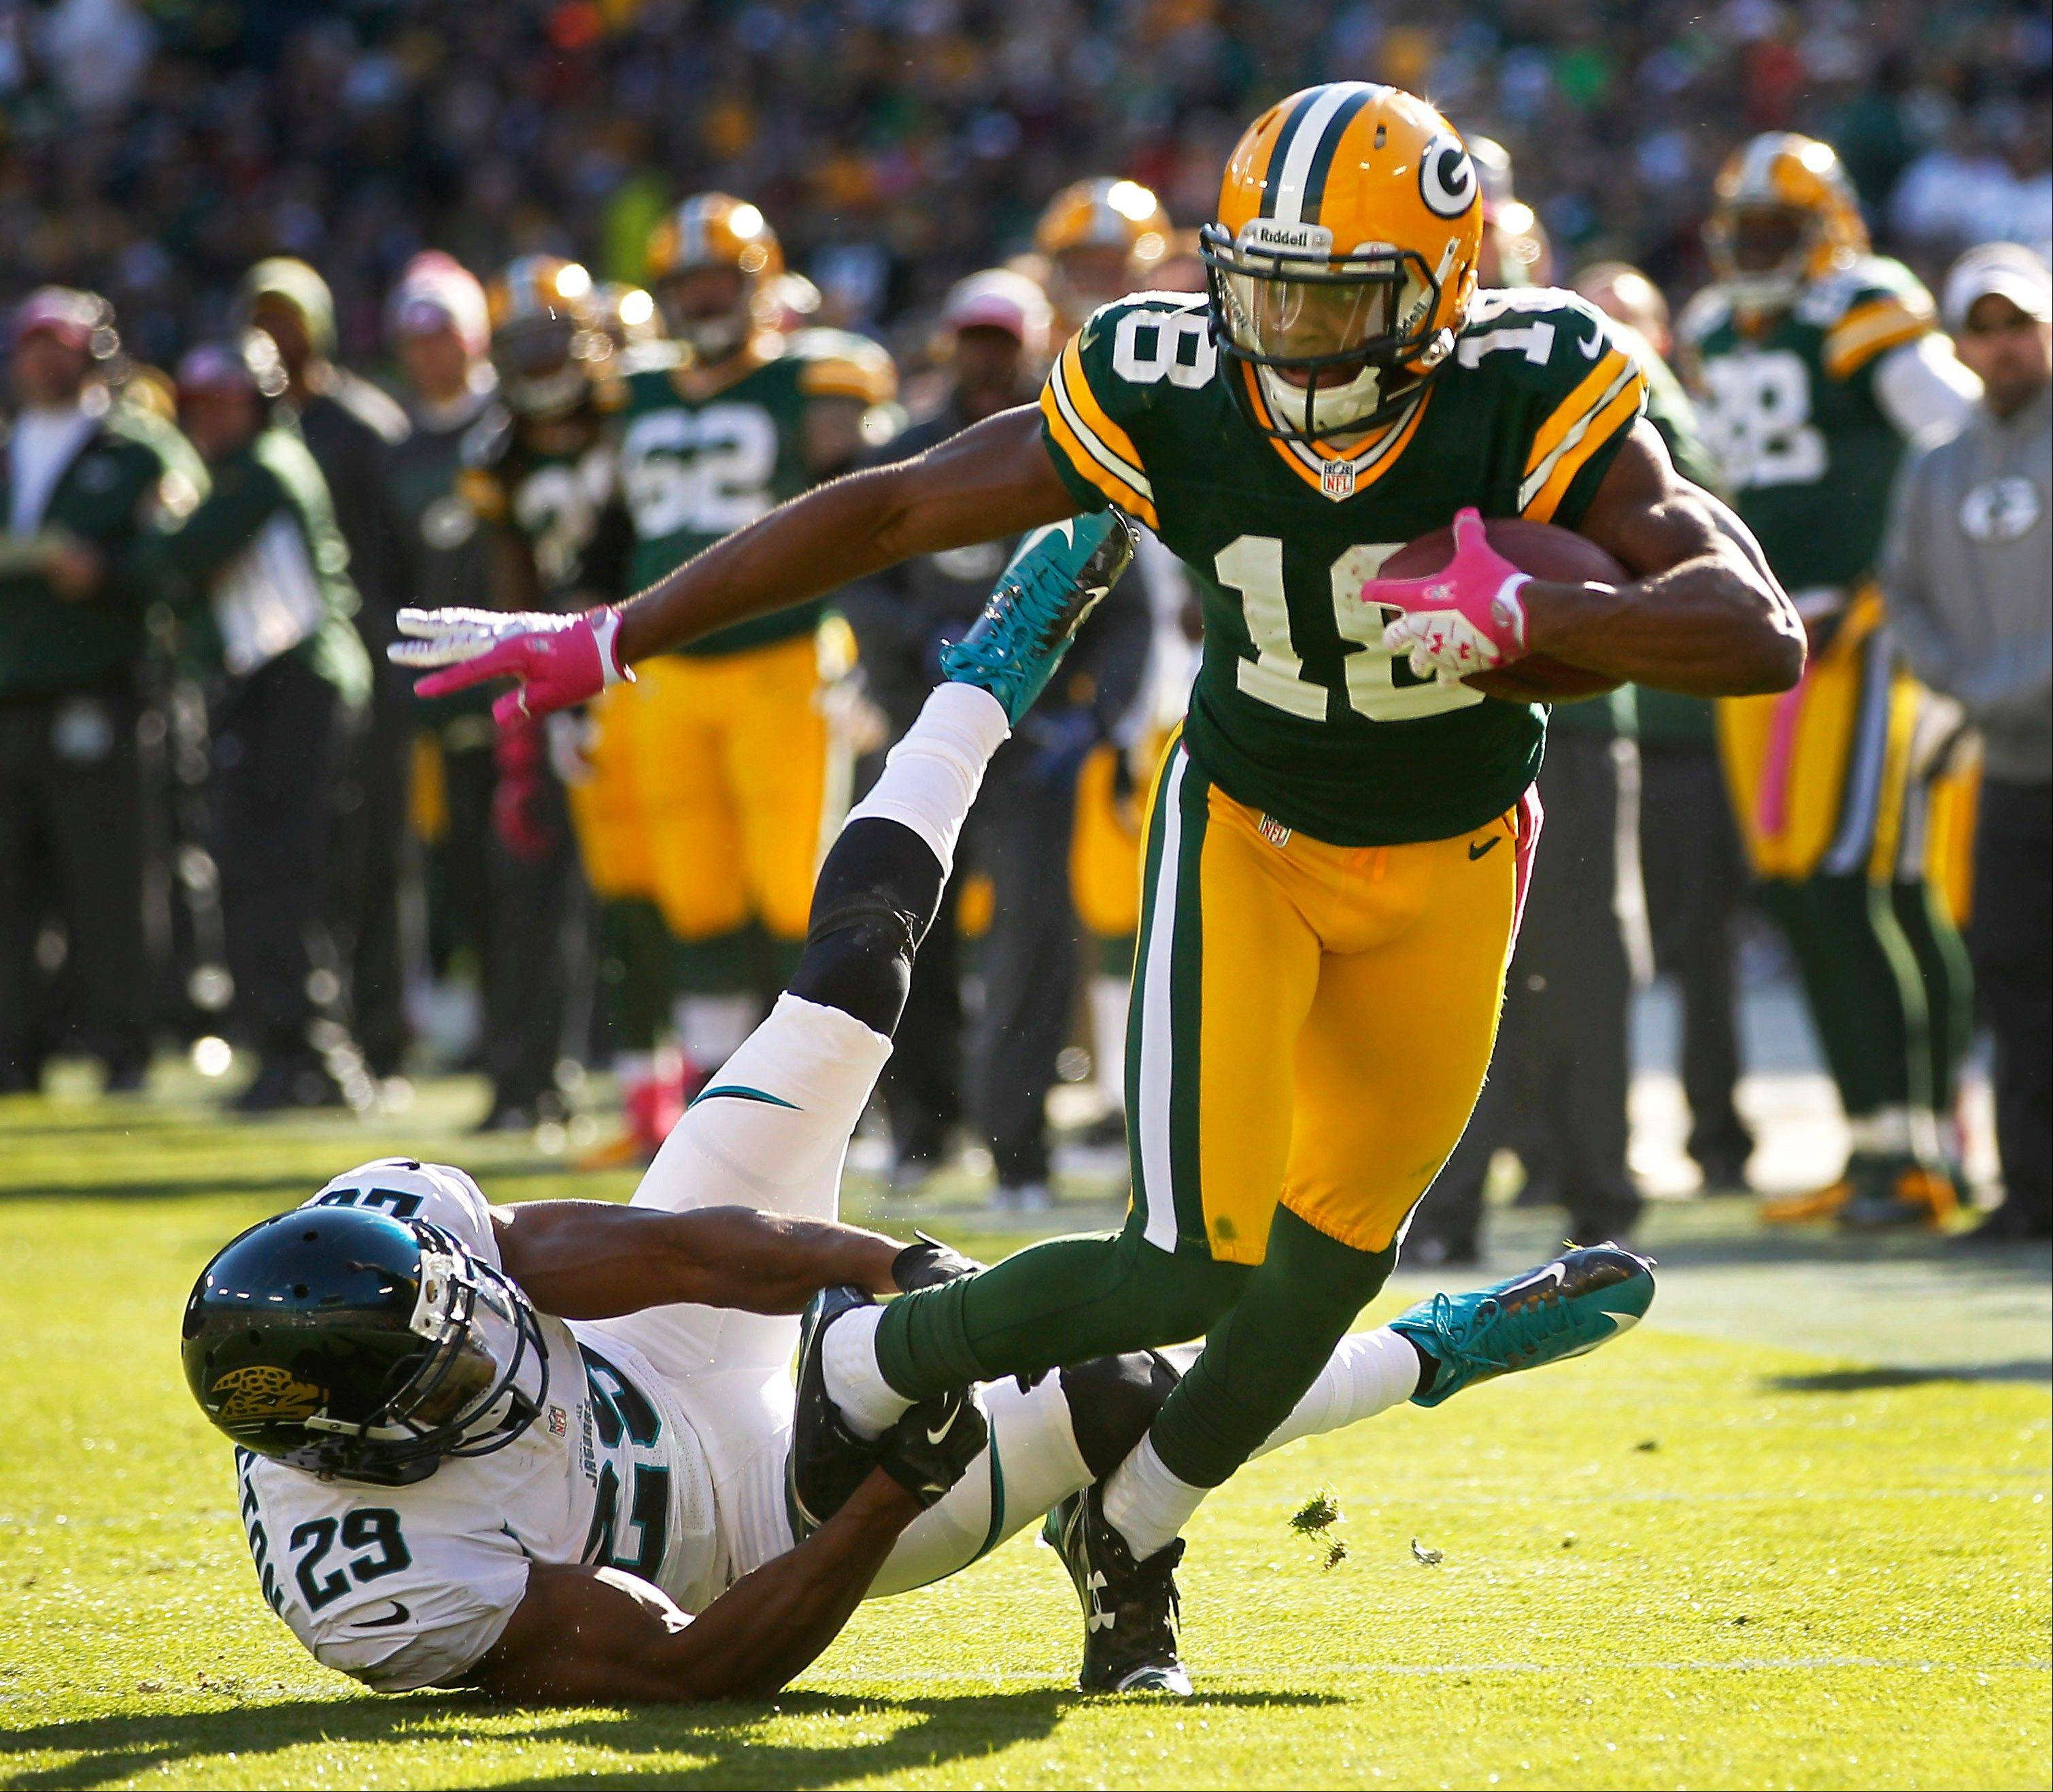 Green Bay Packers wide receiver Randall Cobb tries to get away from Jacksonville Jaguars cornerback William Middleton during the second half in Green Bay, Wis. The Packers won 24-15.